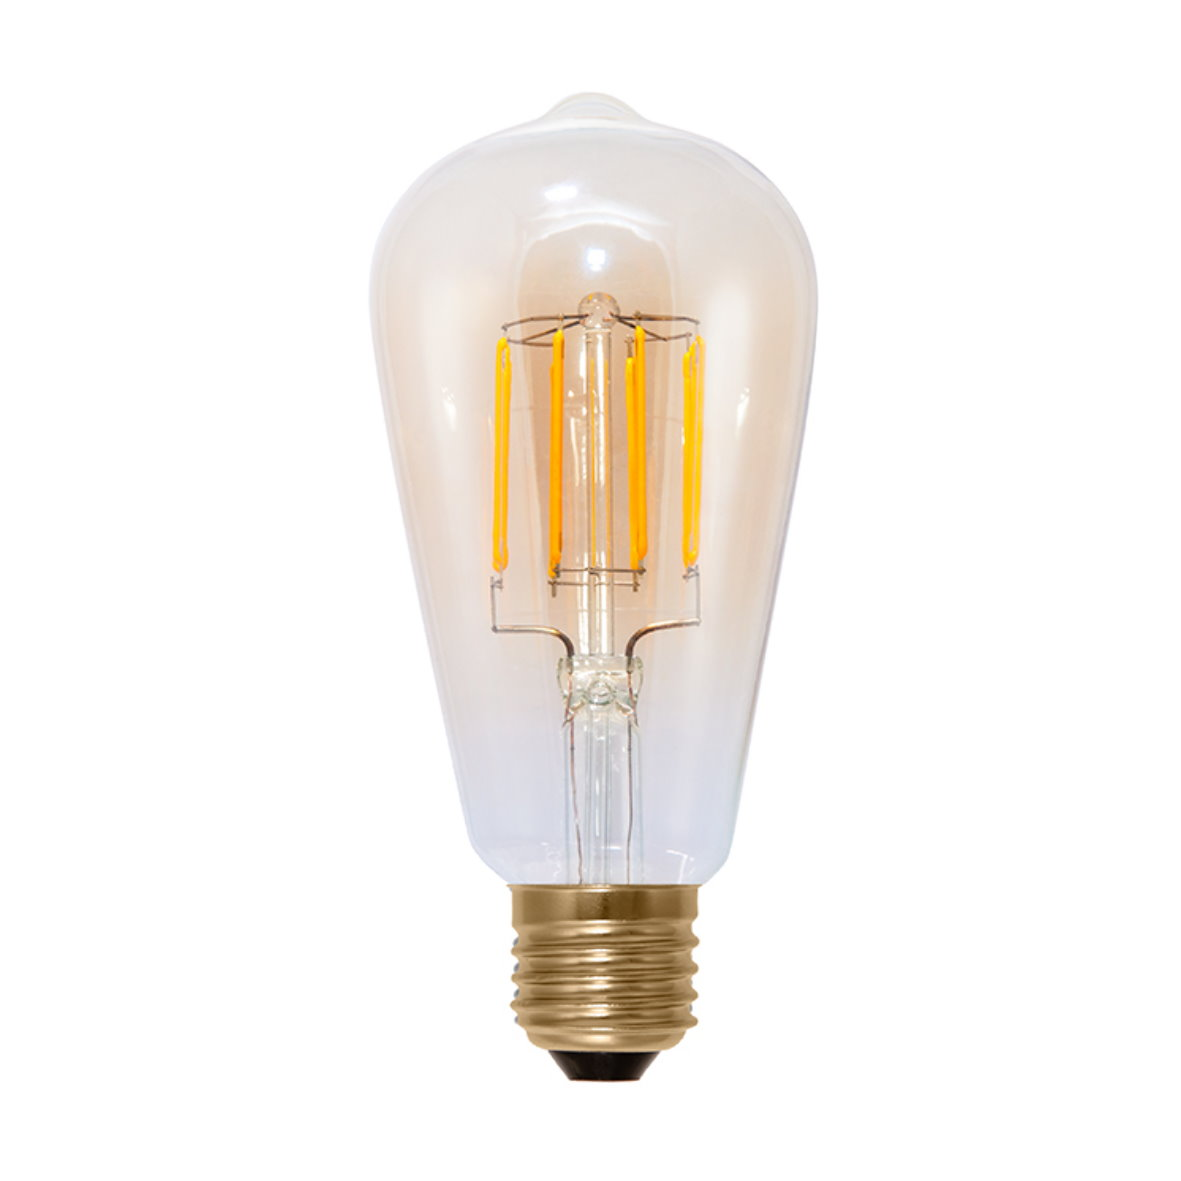 segula led cob leuchtmittel vintage filament edison nostalgie birne bulb dimmbar ebay. Black Bedroom Furniture Sets. Home Design Ideas